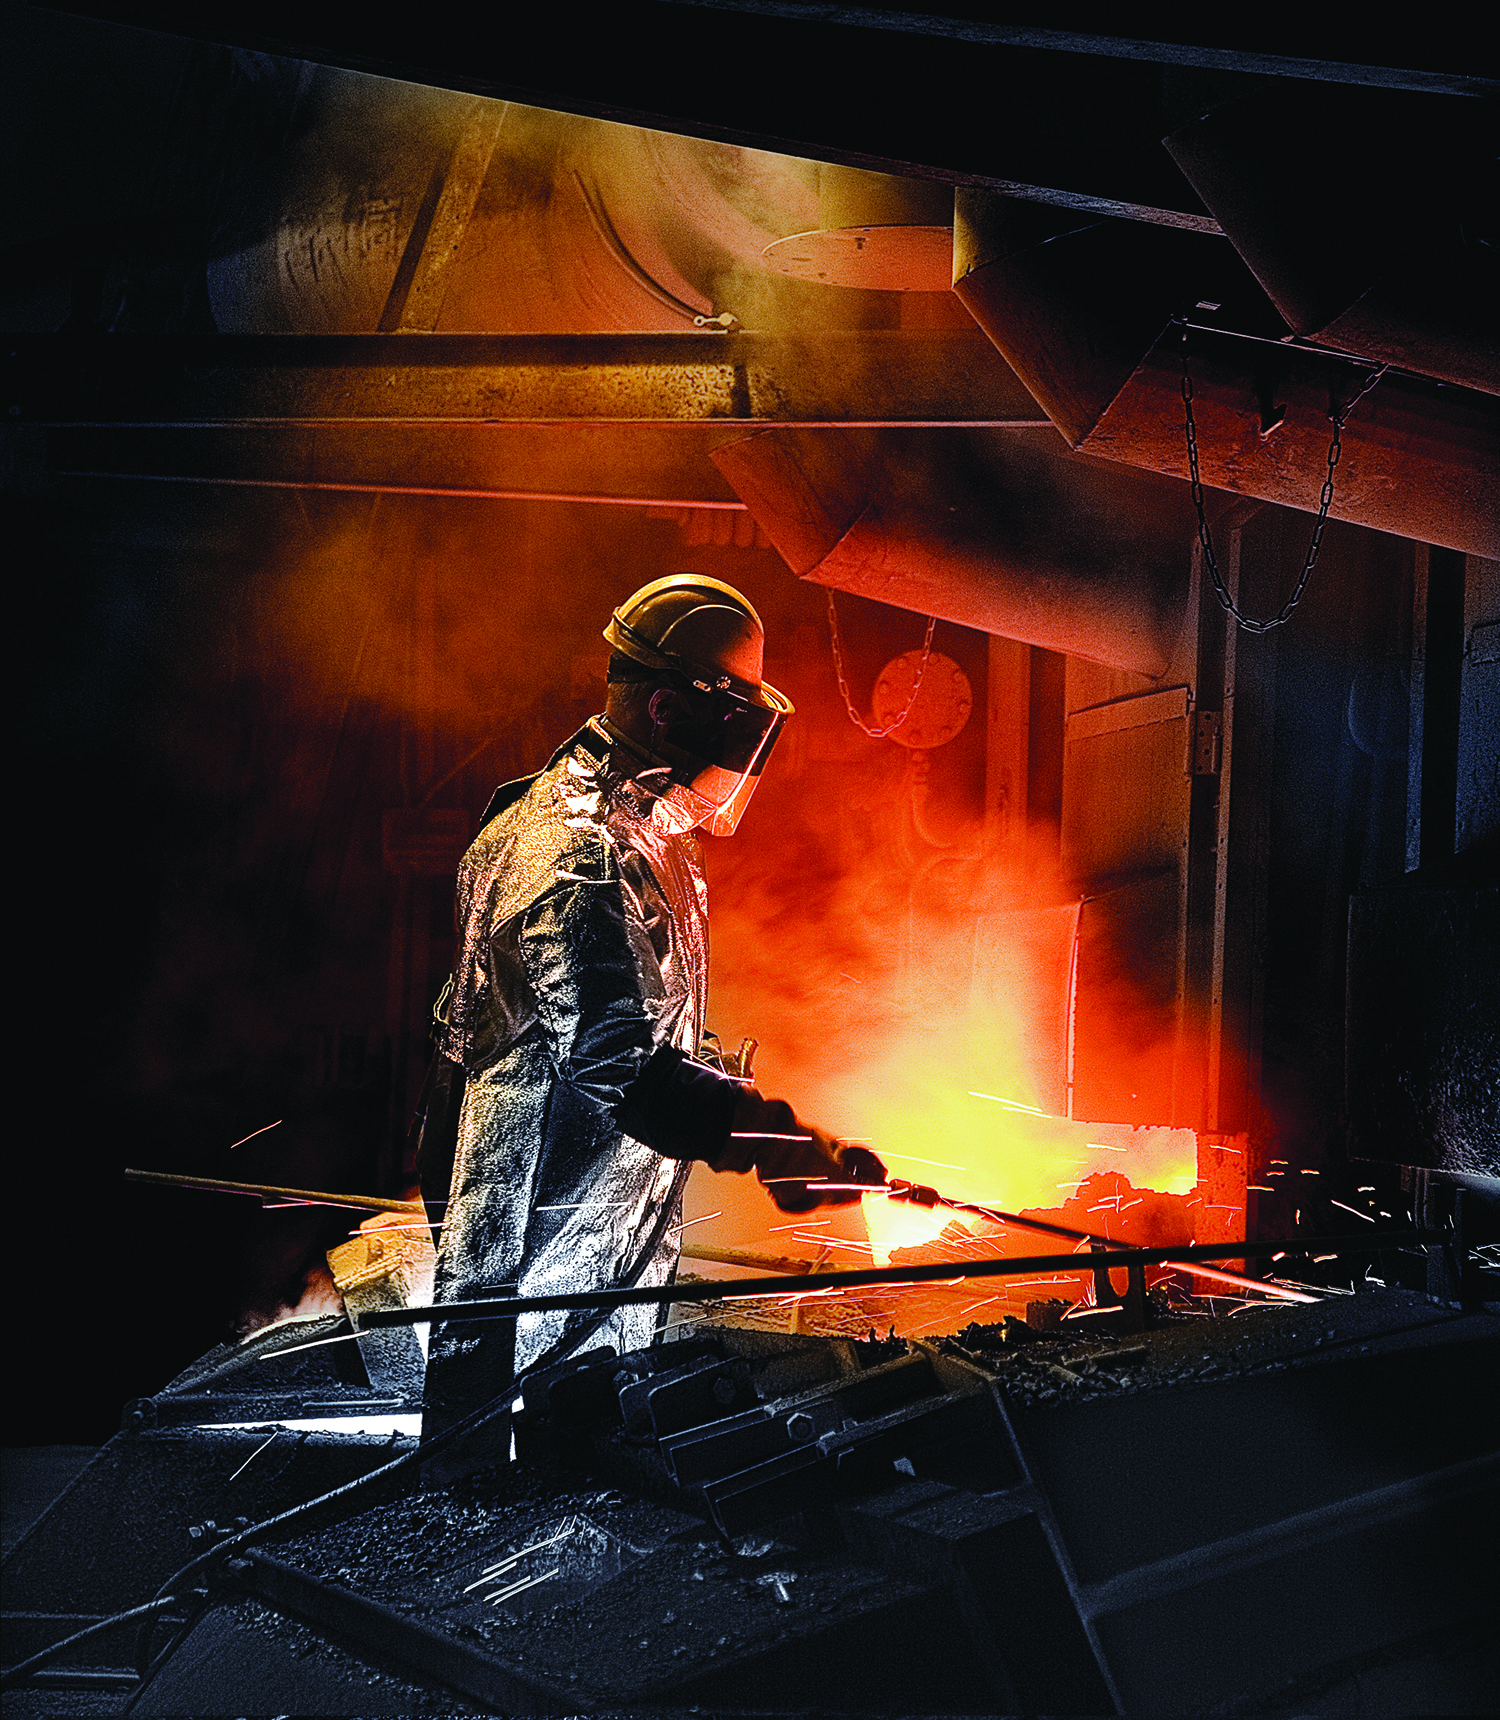 Flash smelting at Harjavalta in Finland, where Boliden has adopted a new business model for nickel smelting.